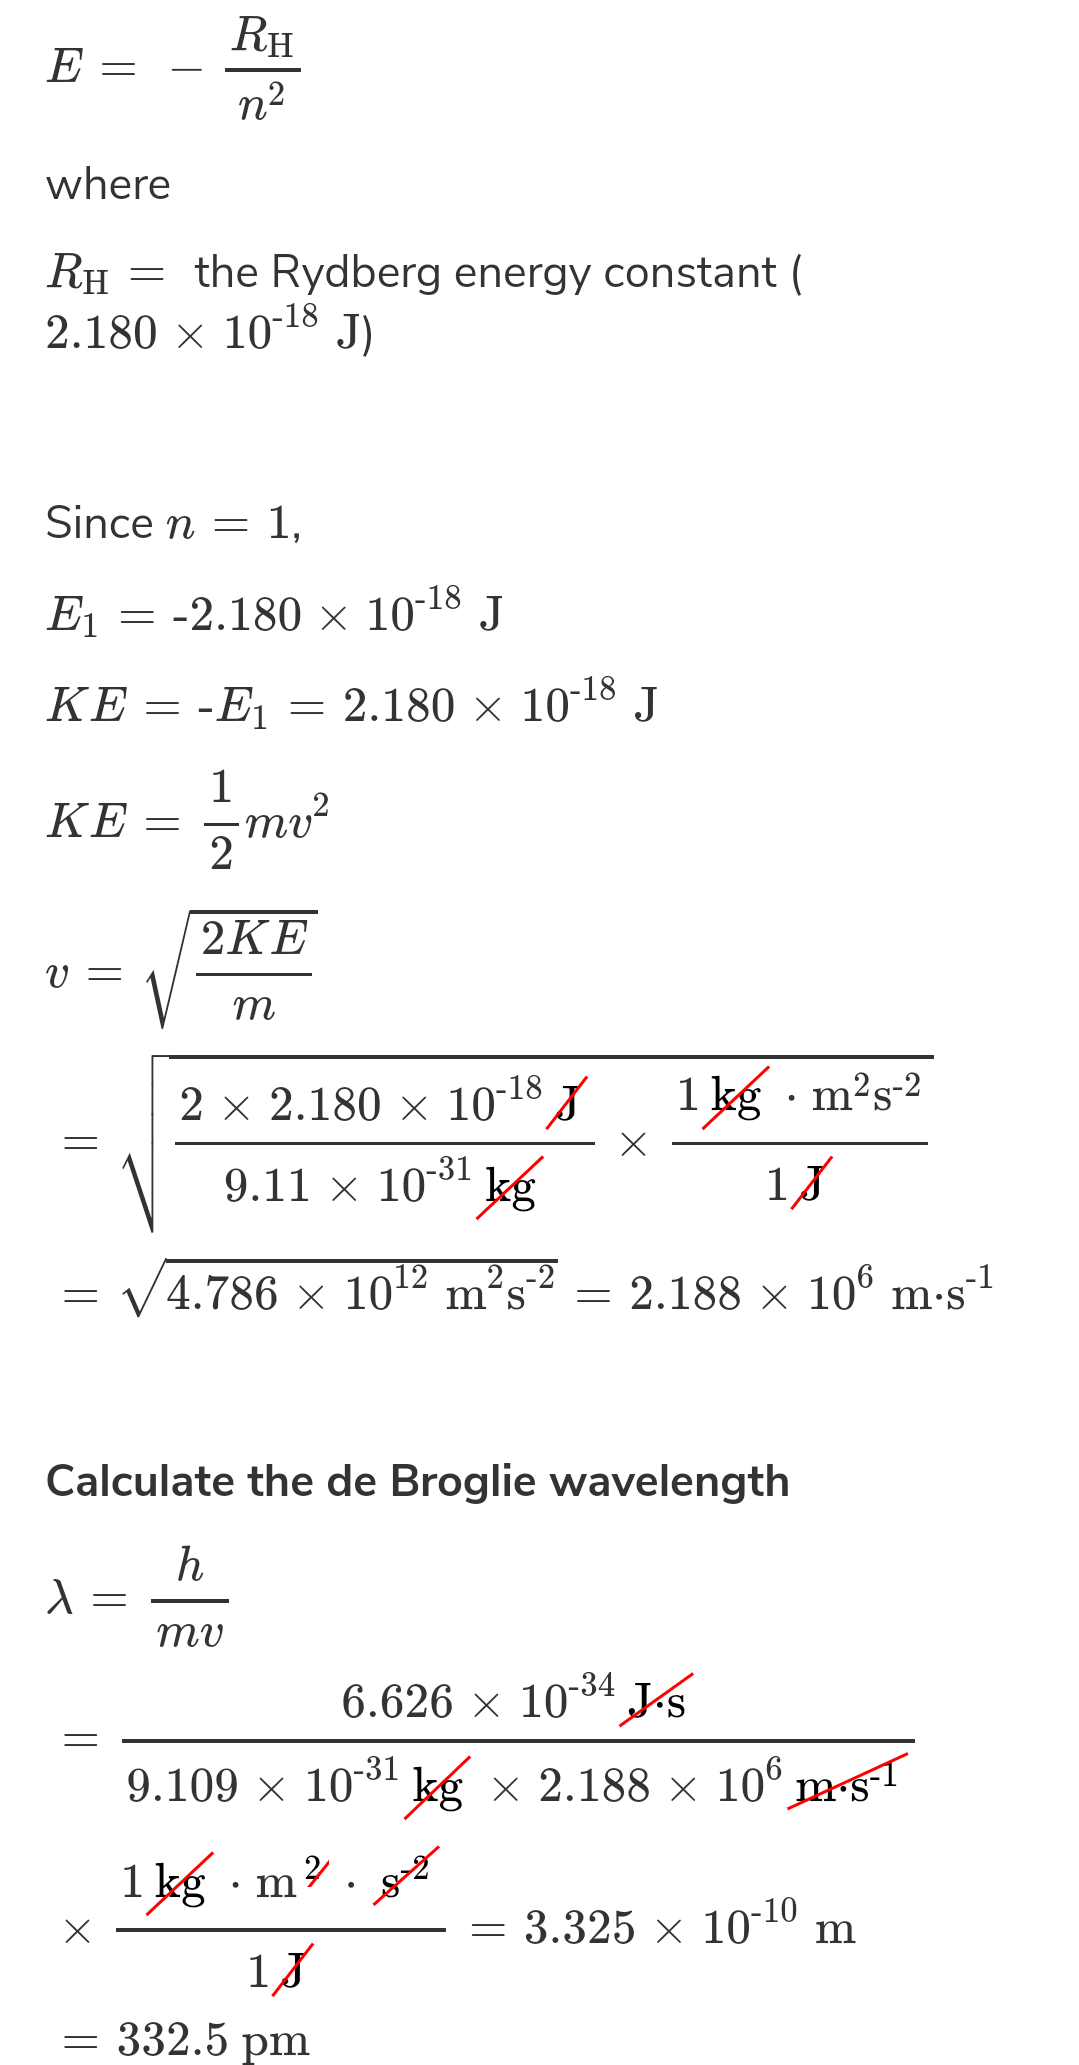 The de Broglie wavelength of electron of He+ ion is 3.329 Å. If the photon emitted upon de-excitation of this He+ ion is made to hit H-atom in its ground state so as to librate electron from it, what will be the de-Broglie's wave length of photoelectron